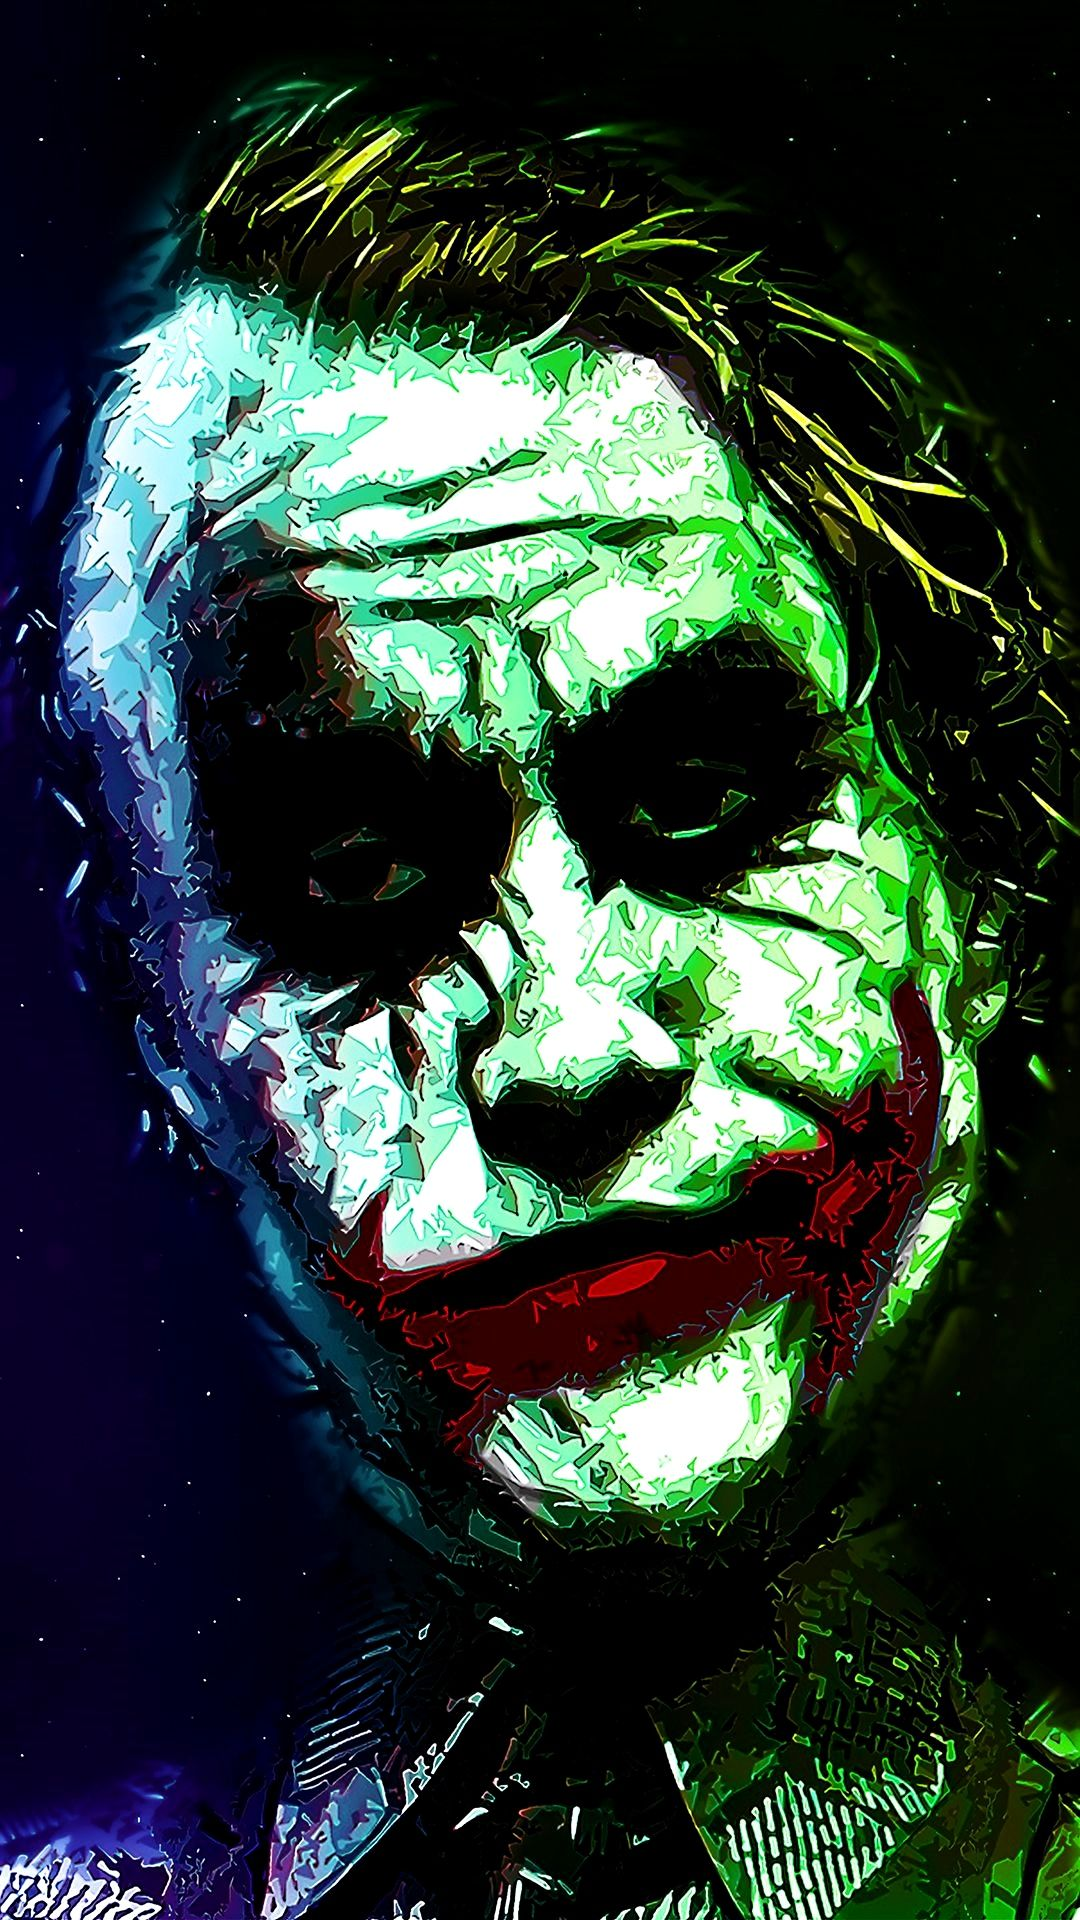 Joker 4K Wallpaper For Mobile Gallery in 2020 Joker